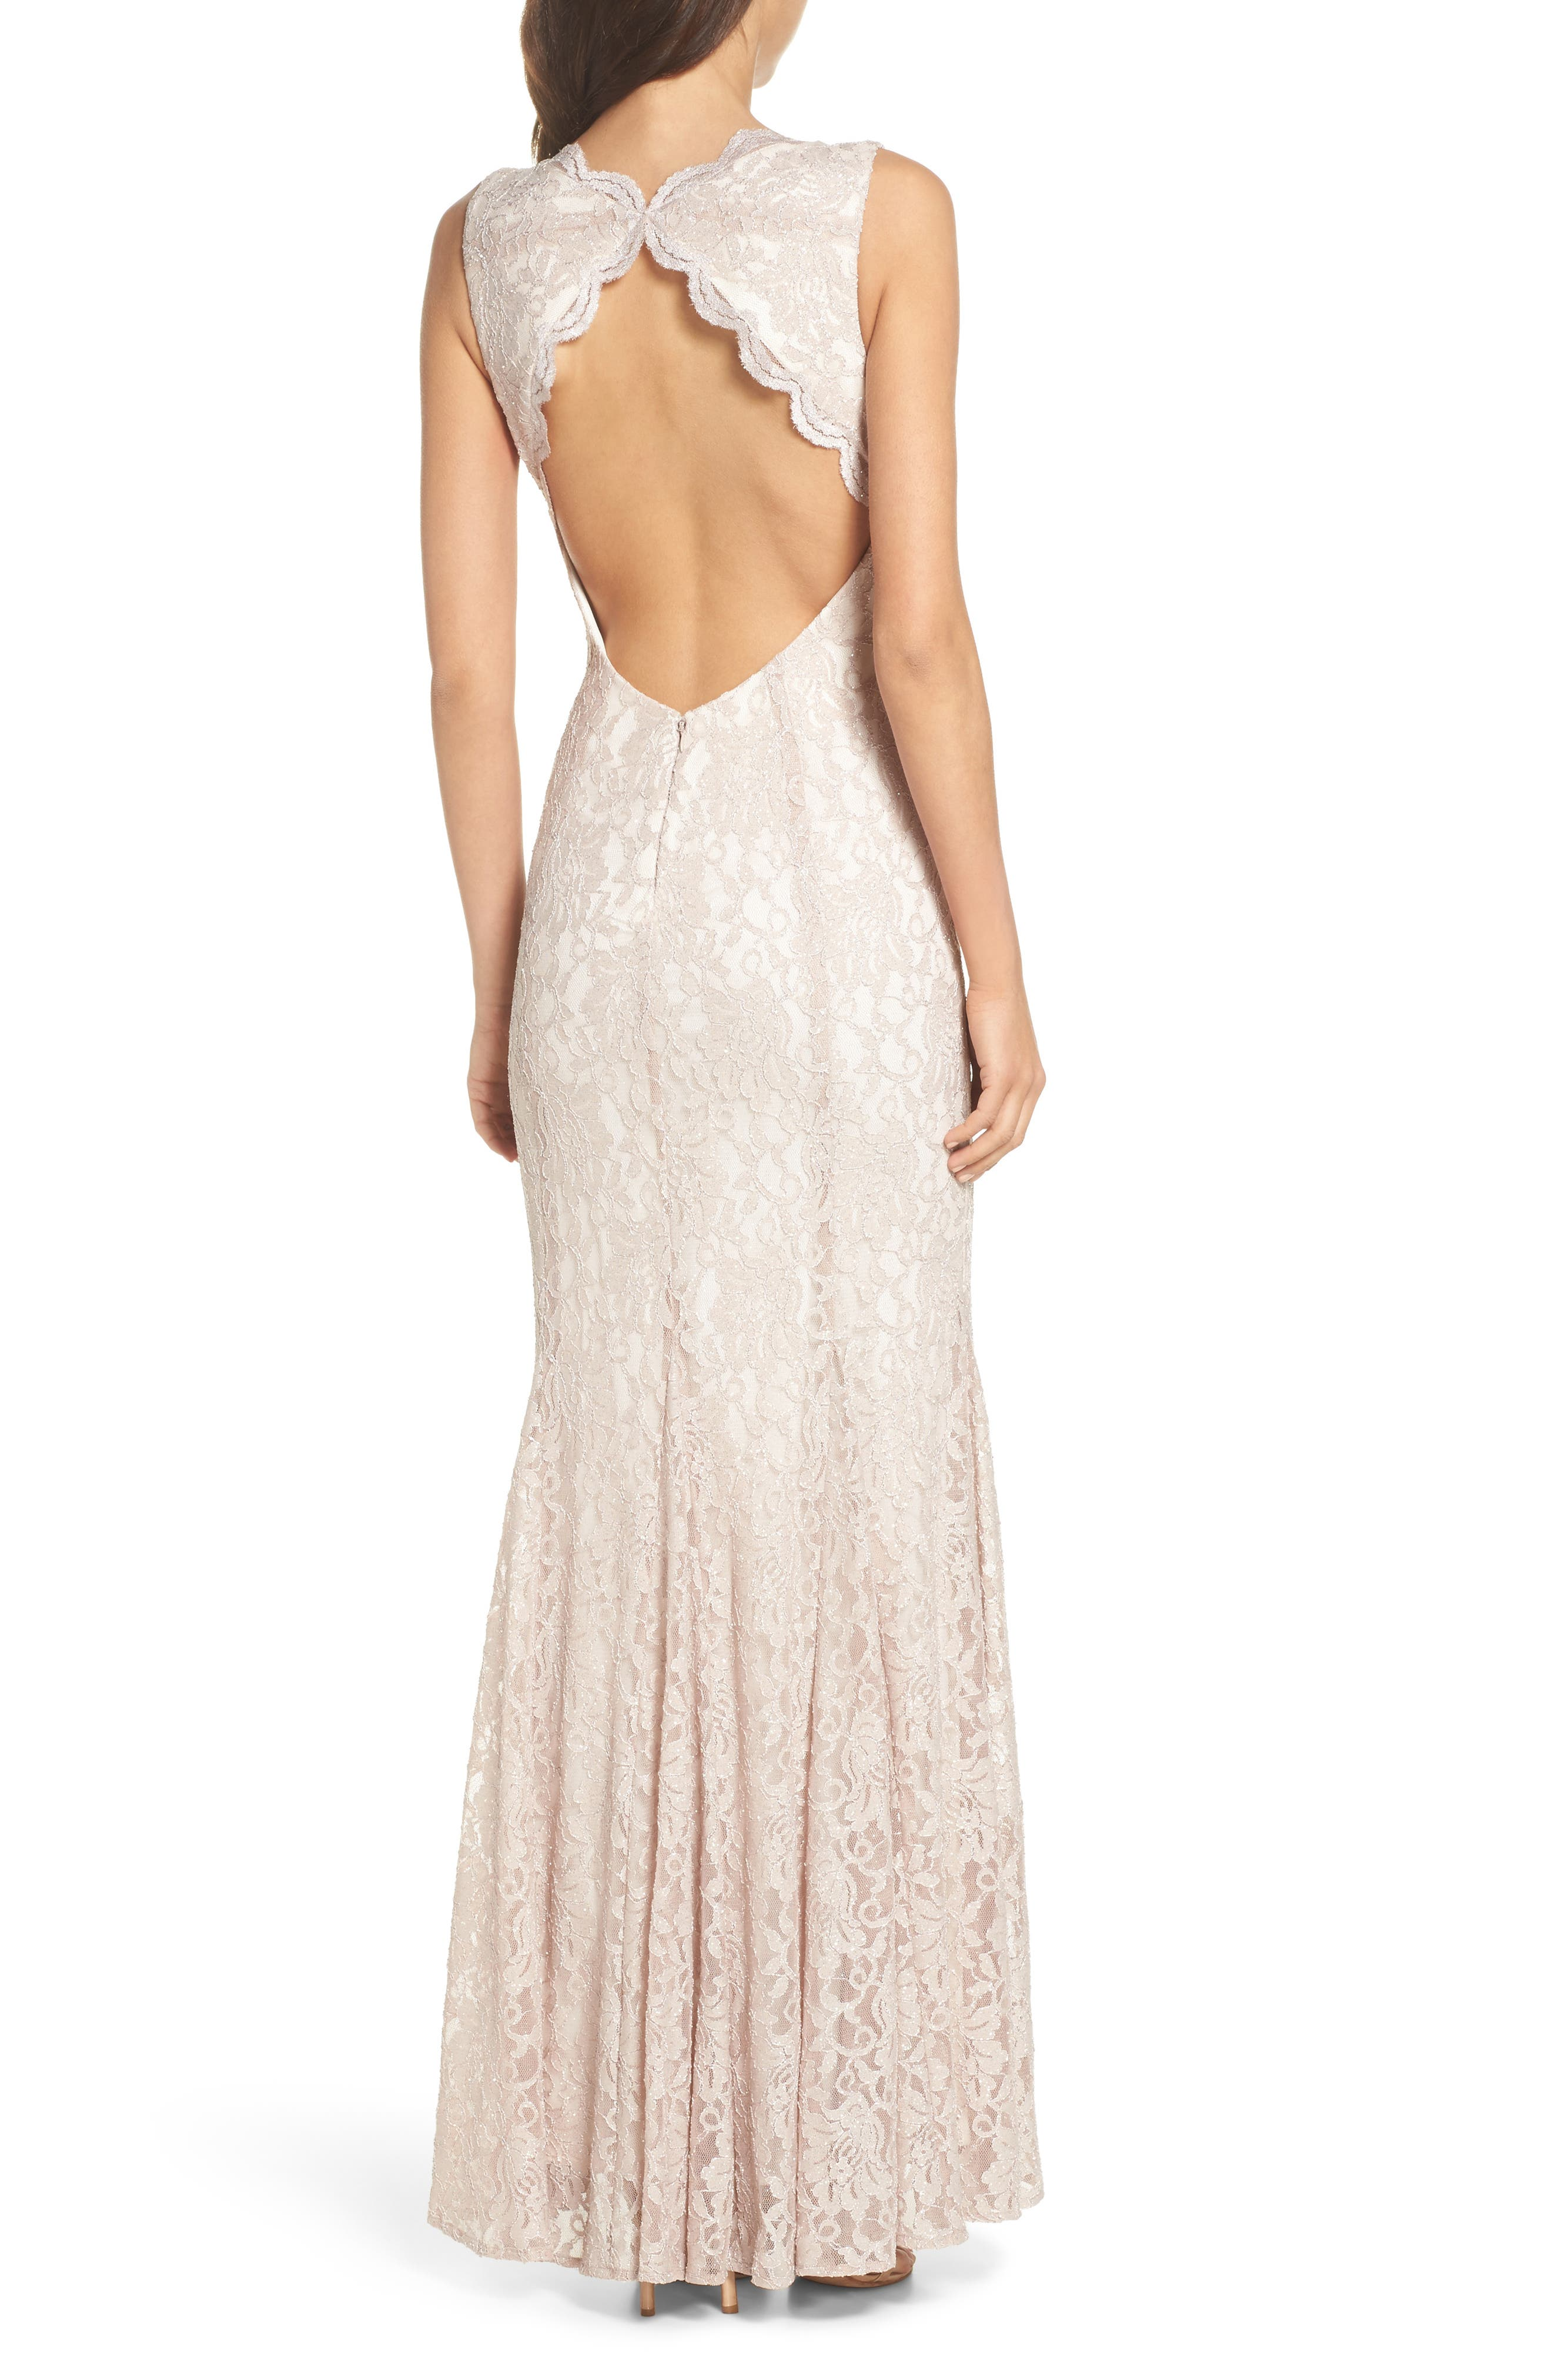 Glitter Lace Trumpet Dress,                             Alternate thumbnail 2, color,                             Champagne / Ivory